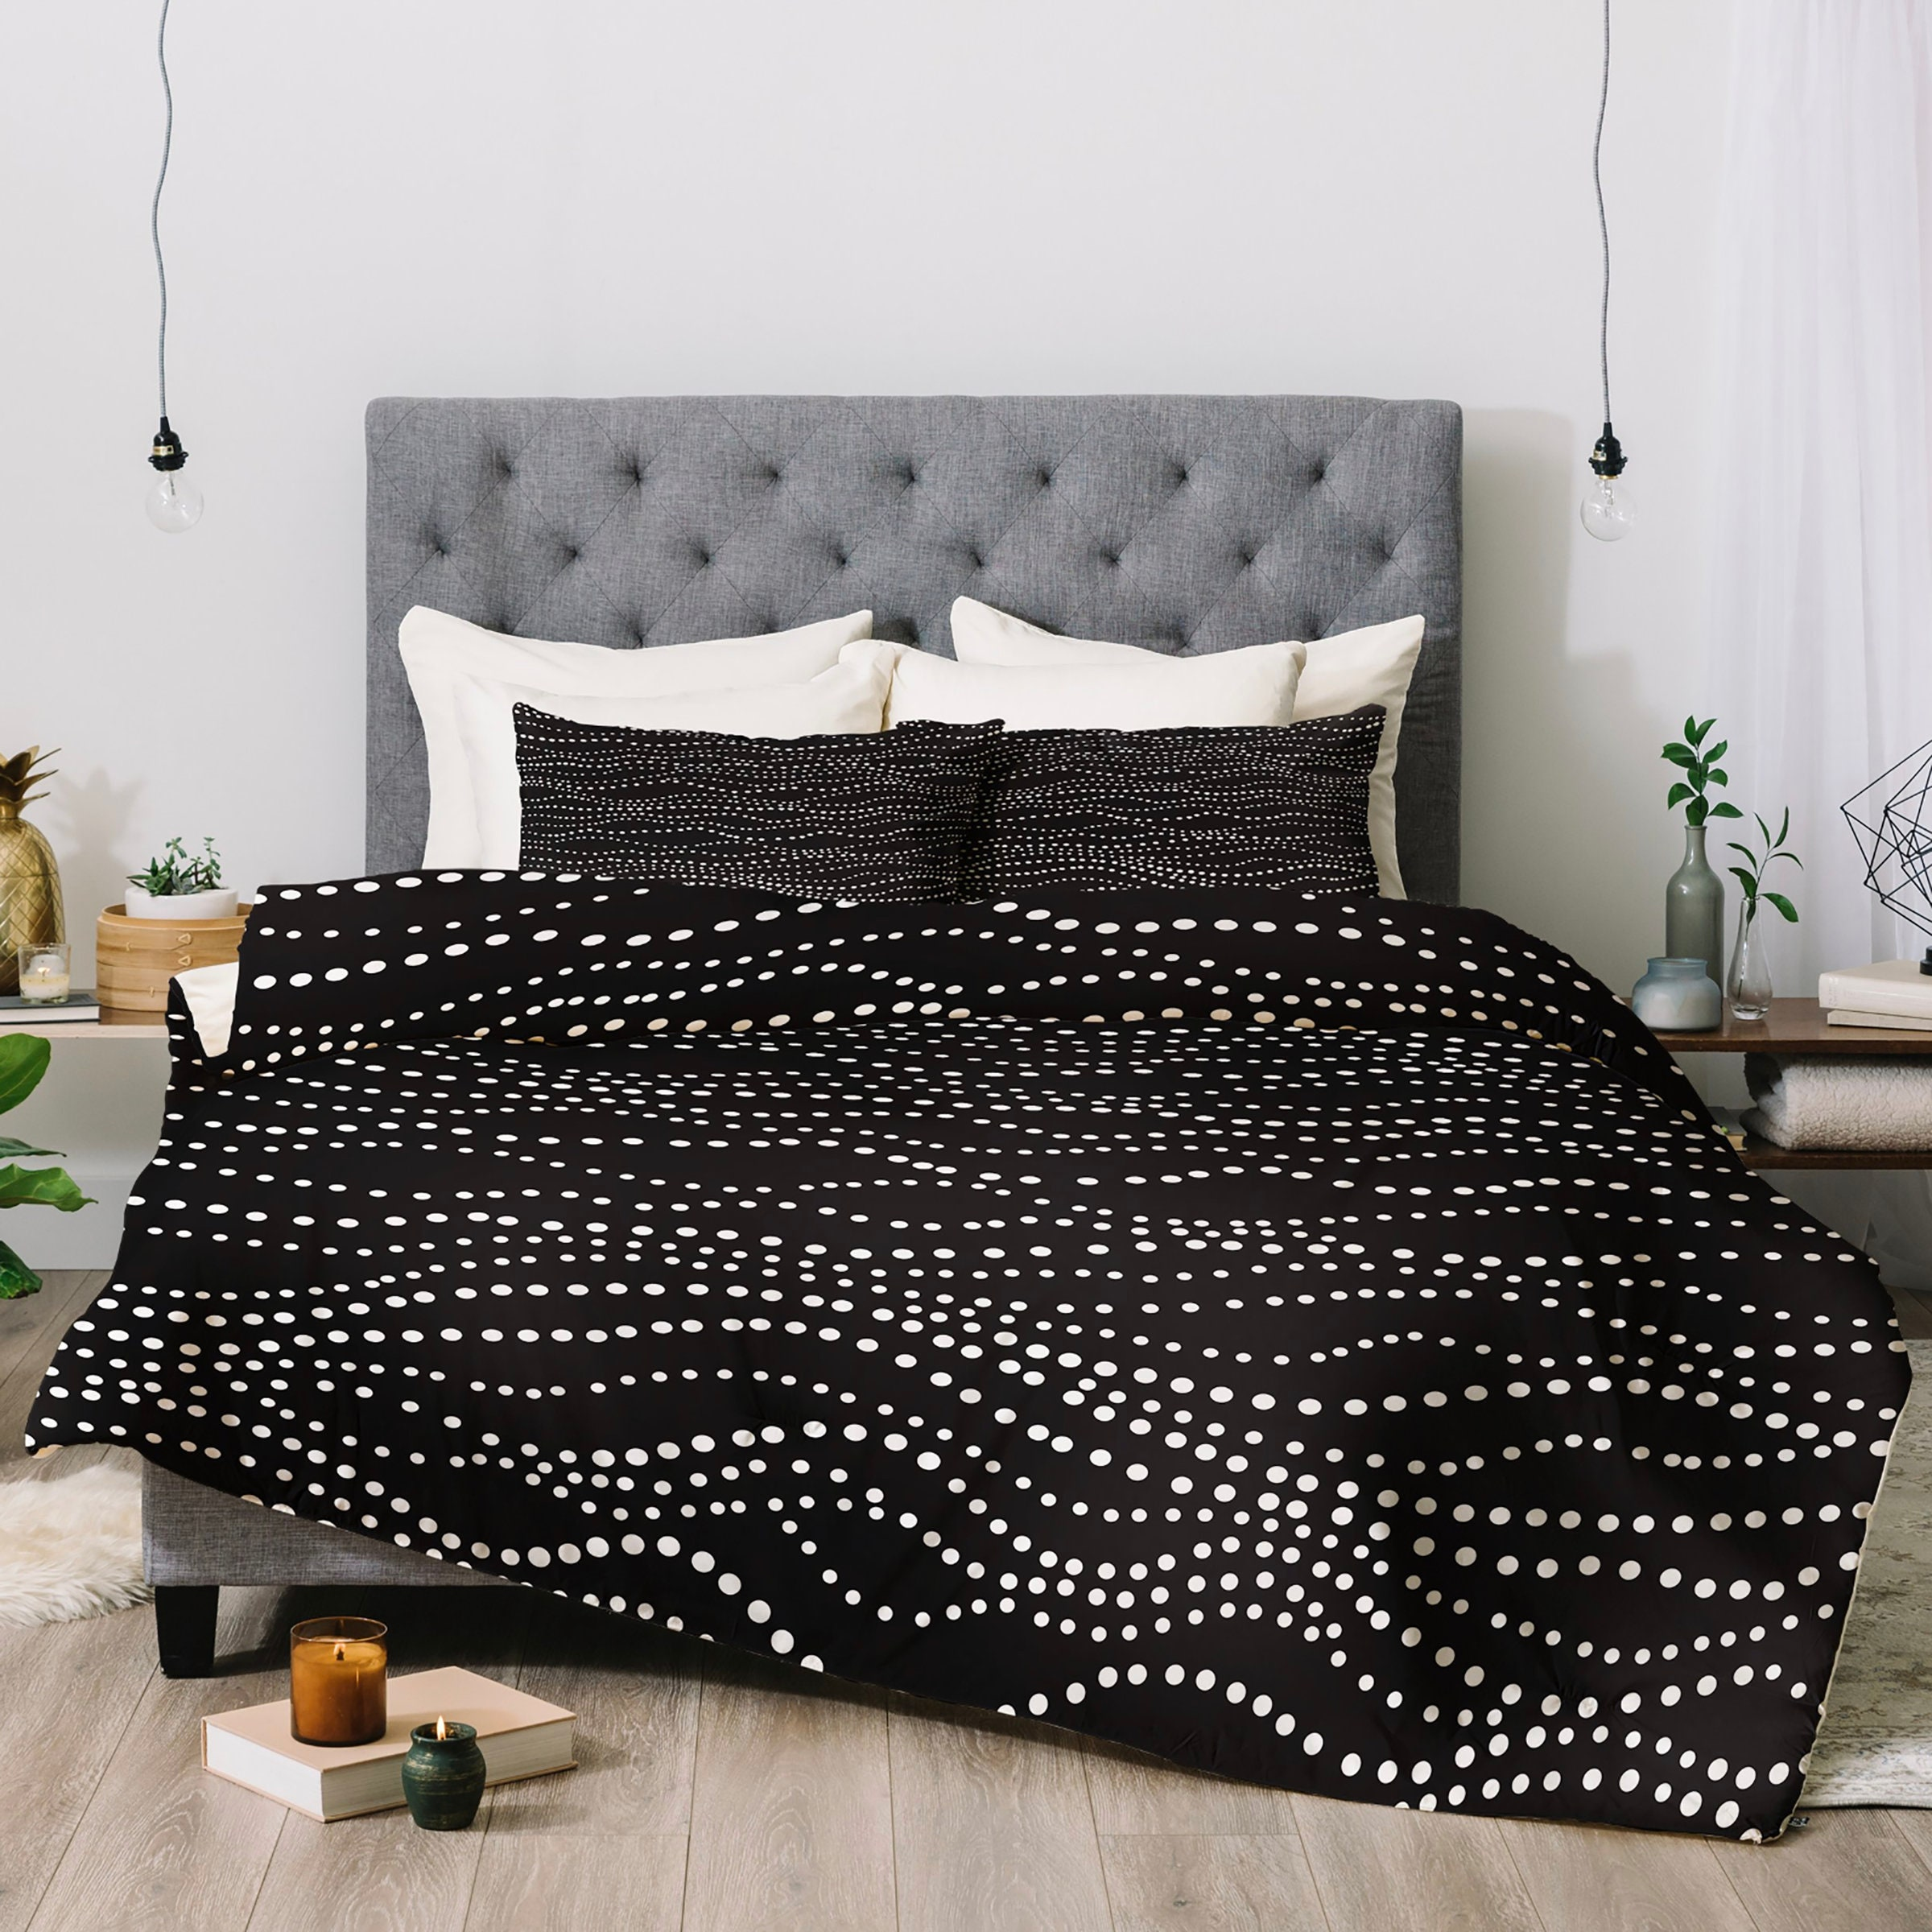 Black Dot Duvet Cover // Modern Geometric Design // Twin, Queen, King Sizes // Bedding // Gossamer Midnight Design // Black - White // Dots